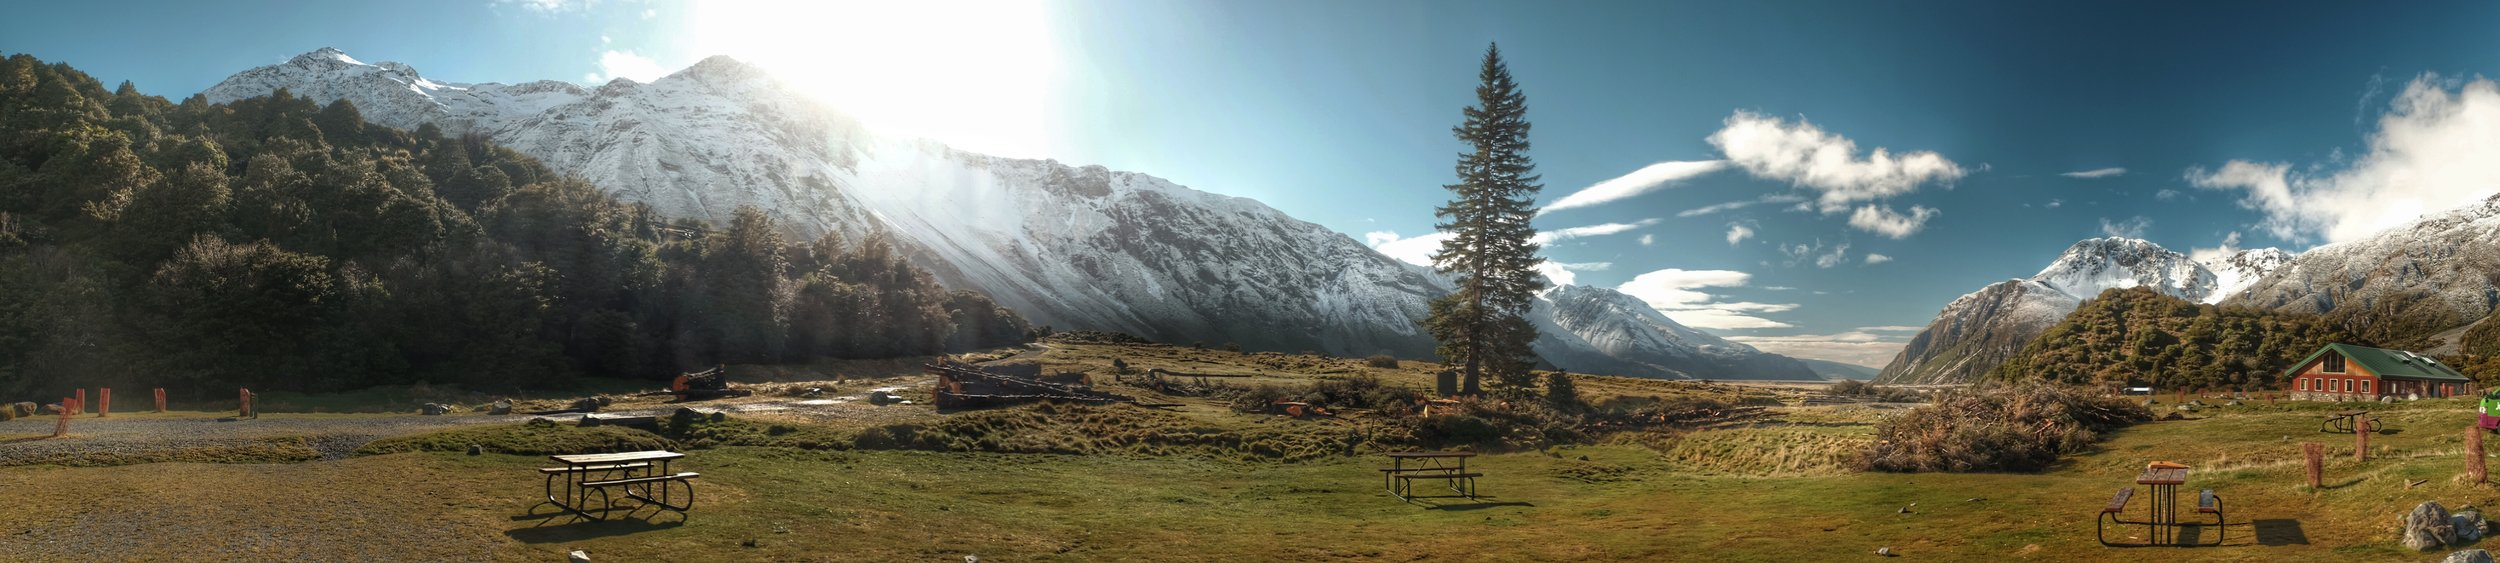 View from the campsite at Mount Cook village.